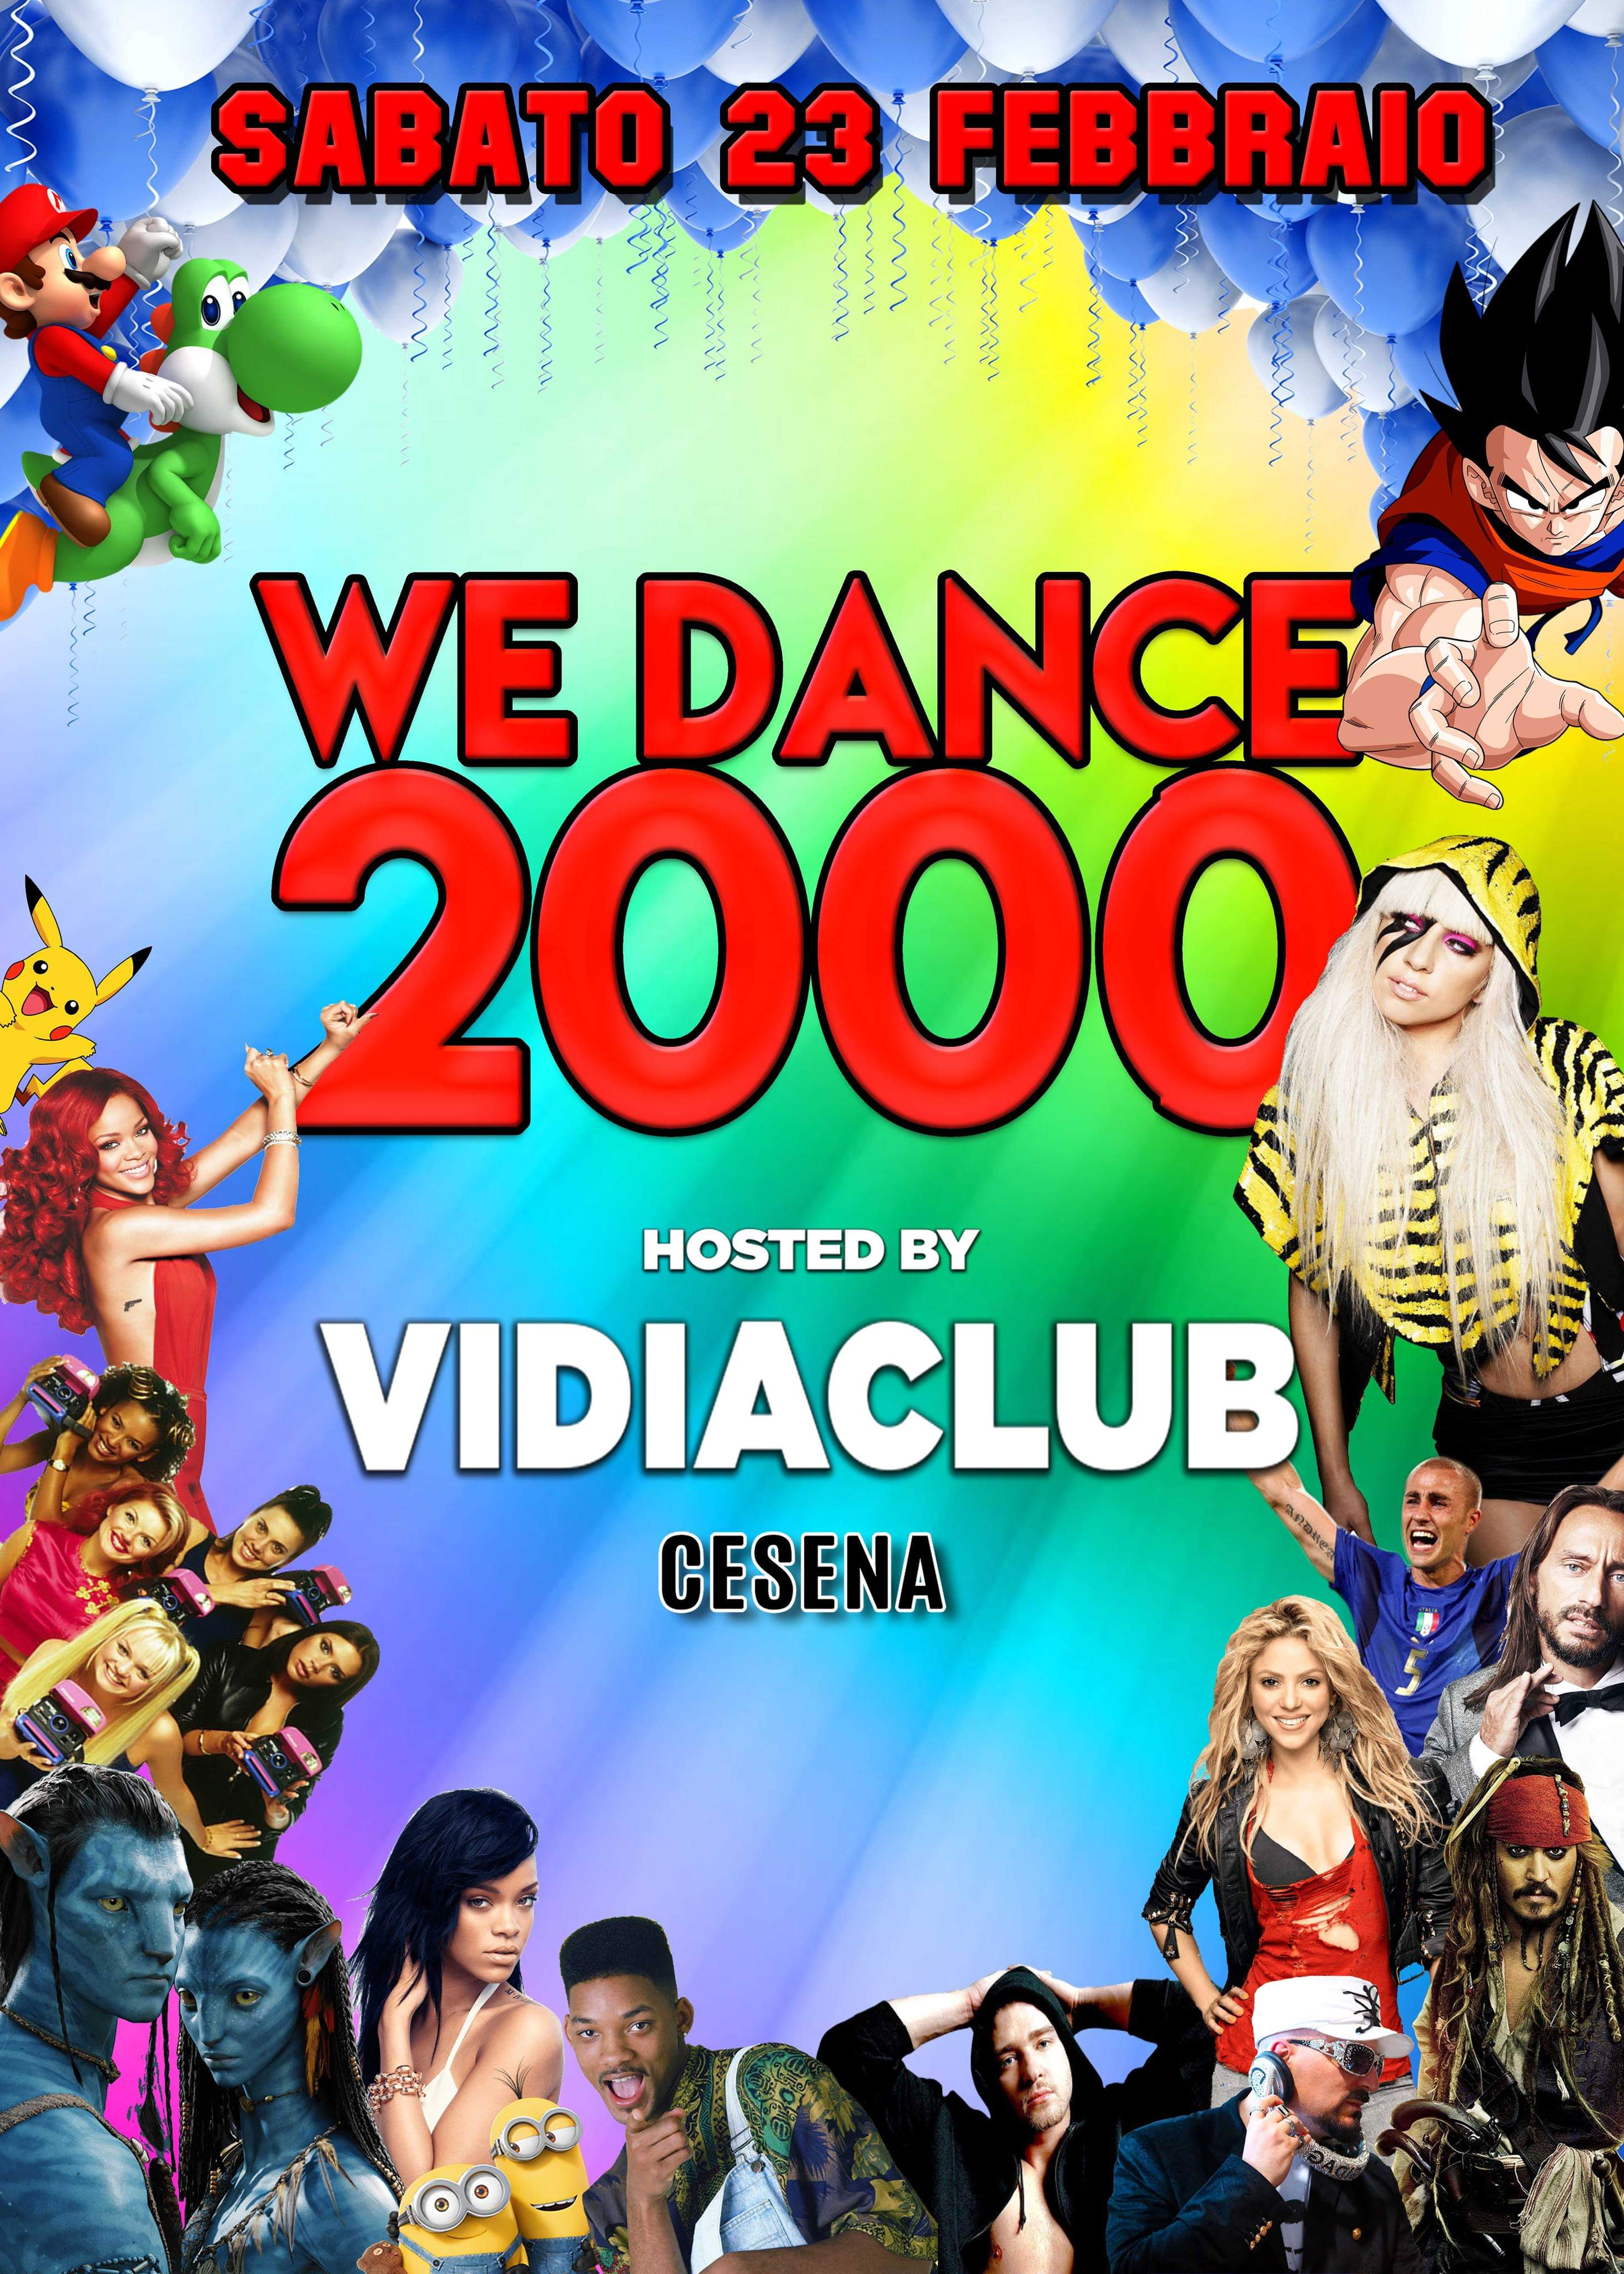 WE DANCE 2000 hosted by Vidia Club